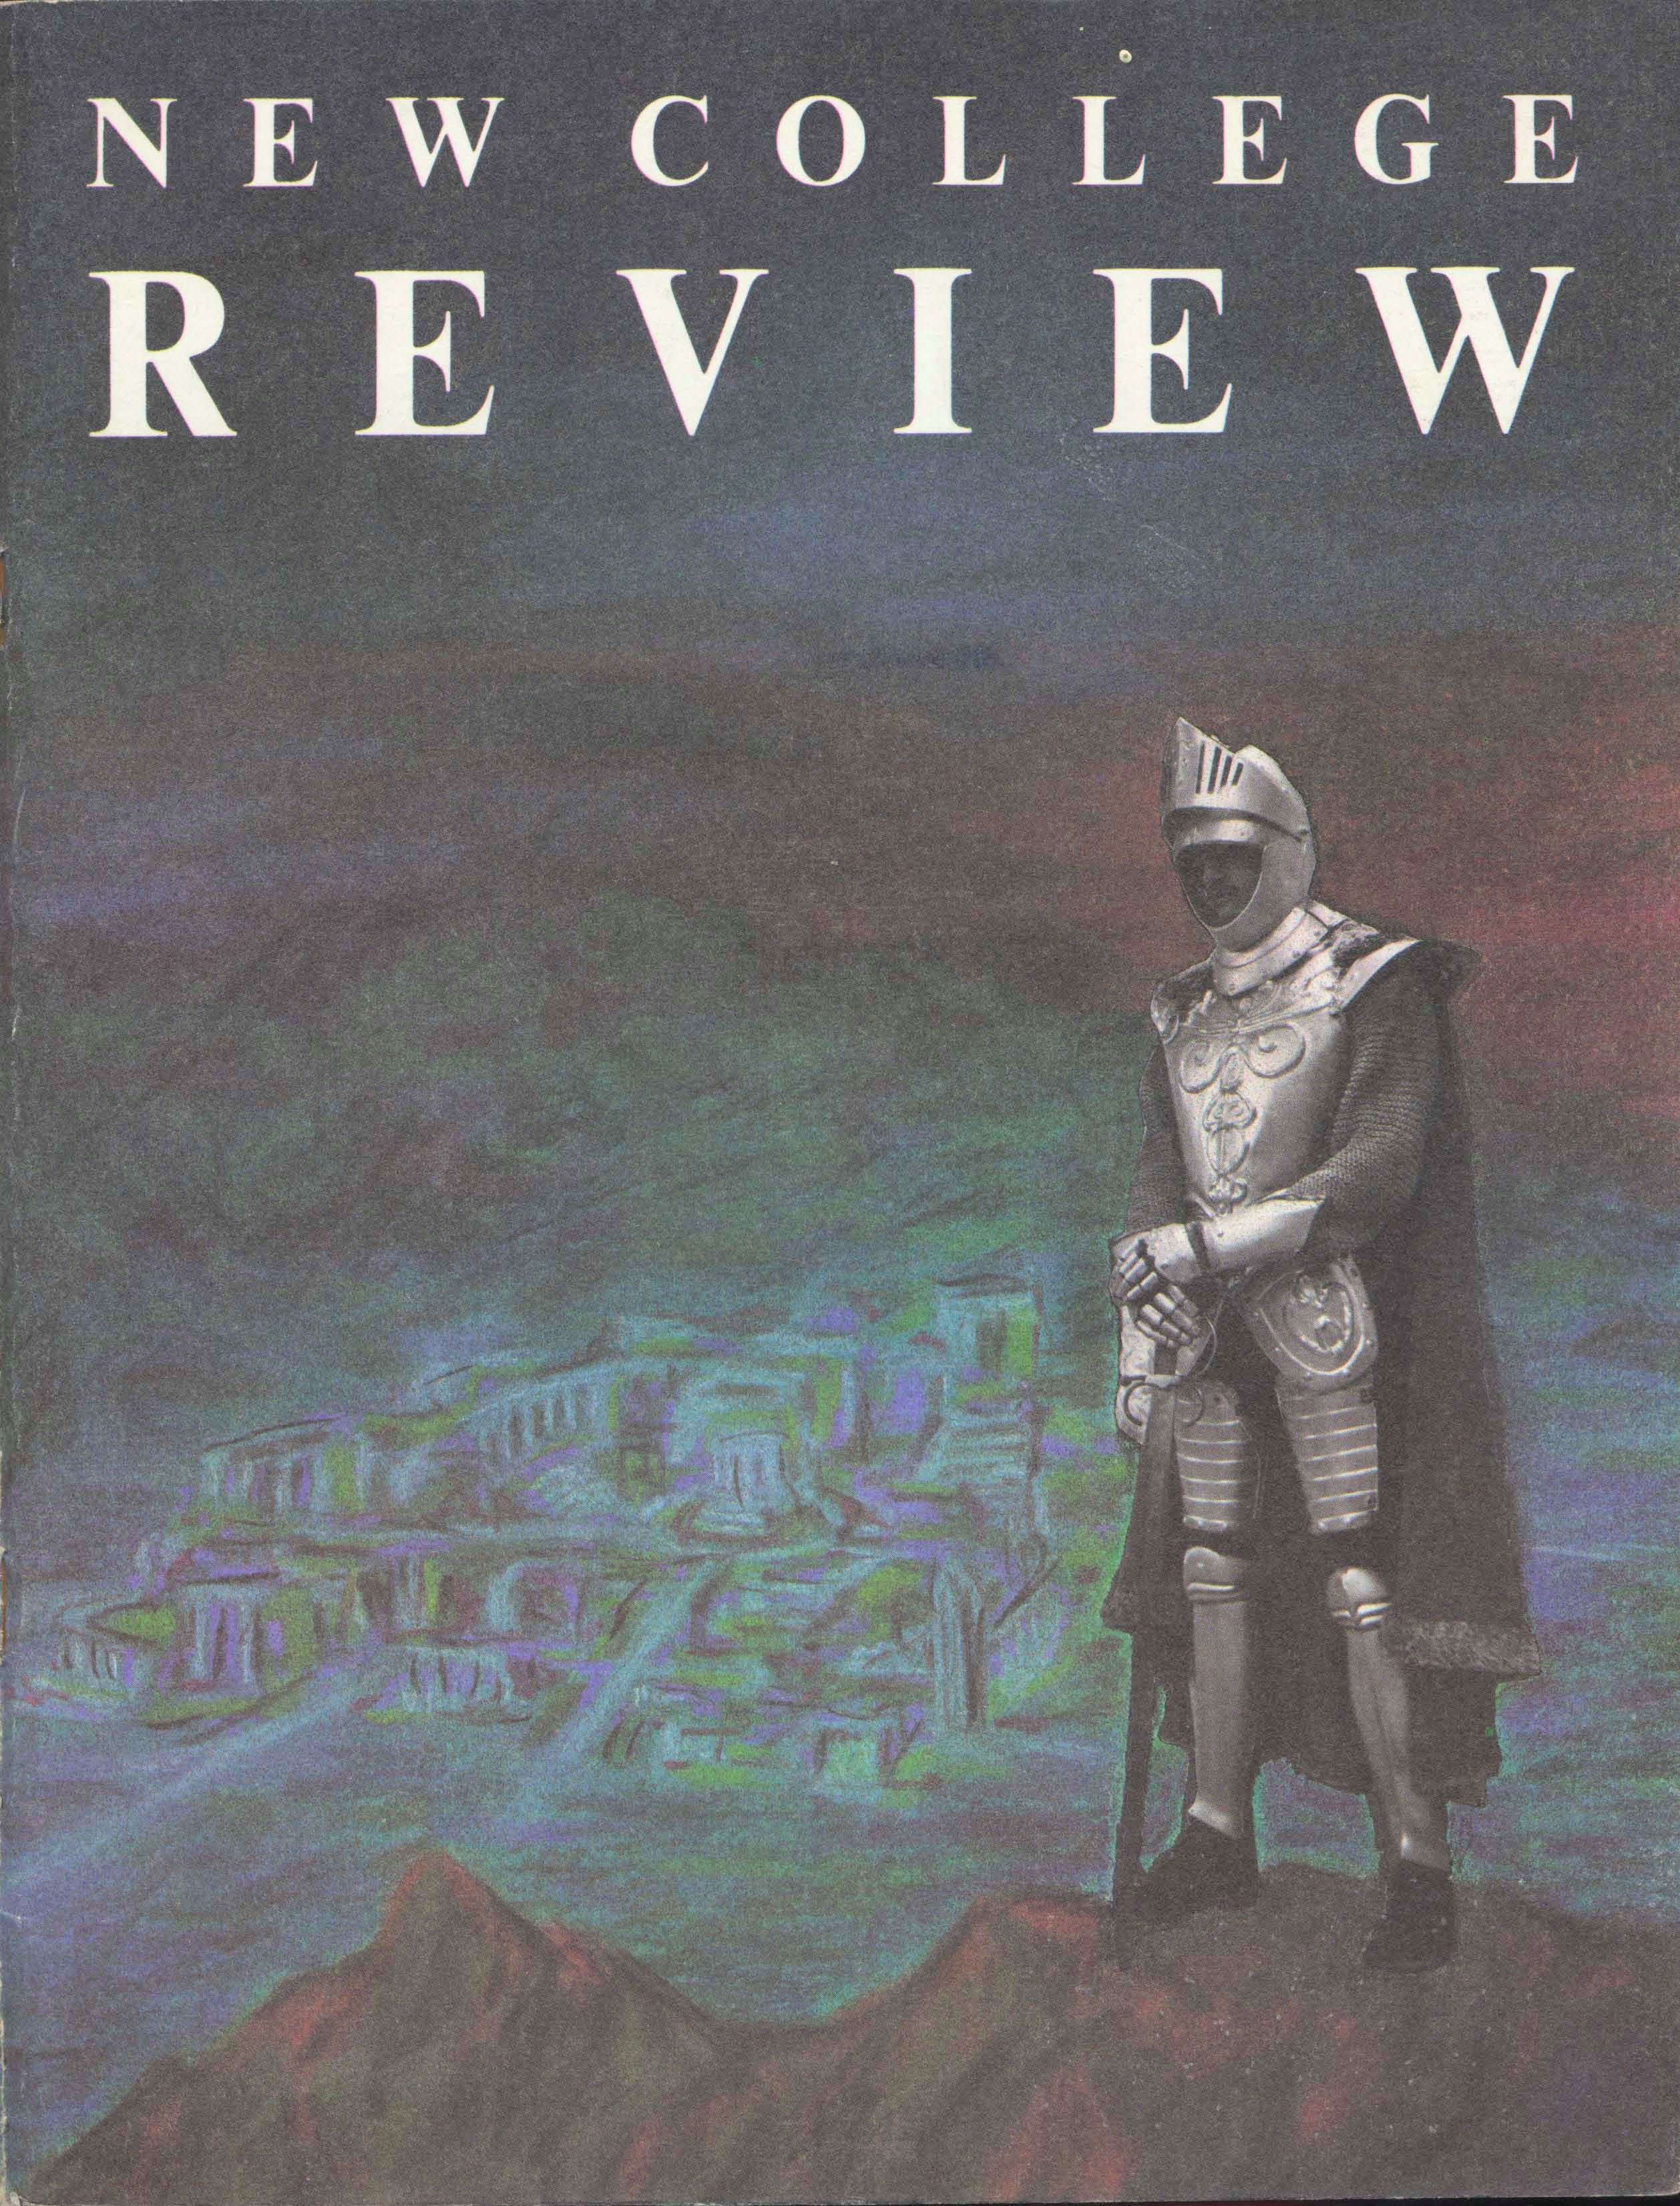 Cover of New College Review from 1985 with a silver knight holding a sword